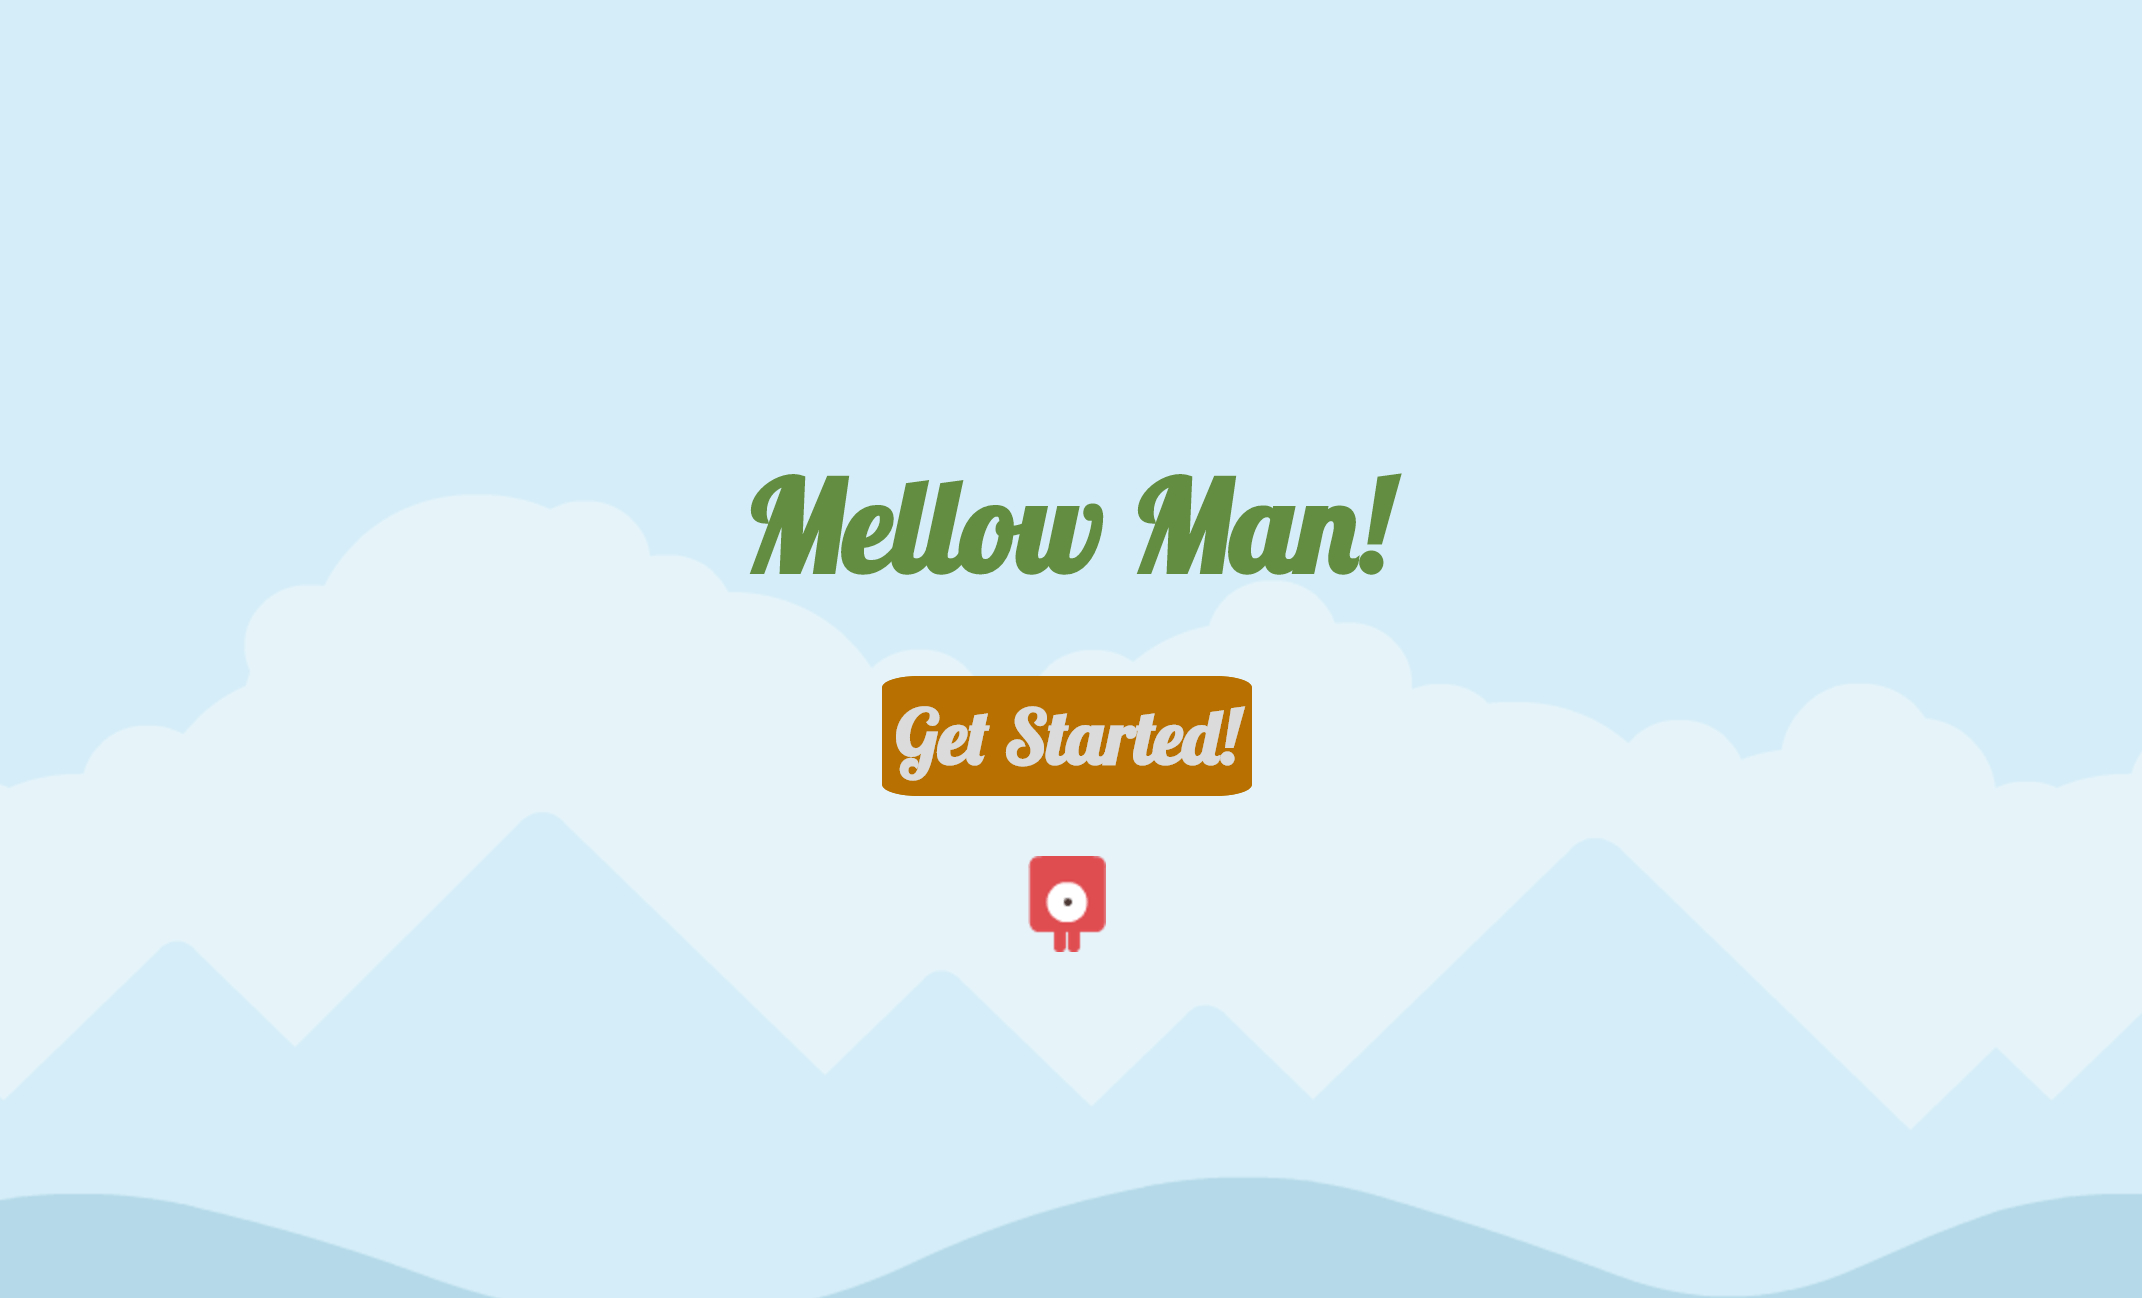 mellowman-homepage